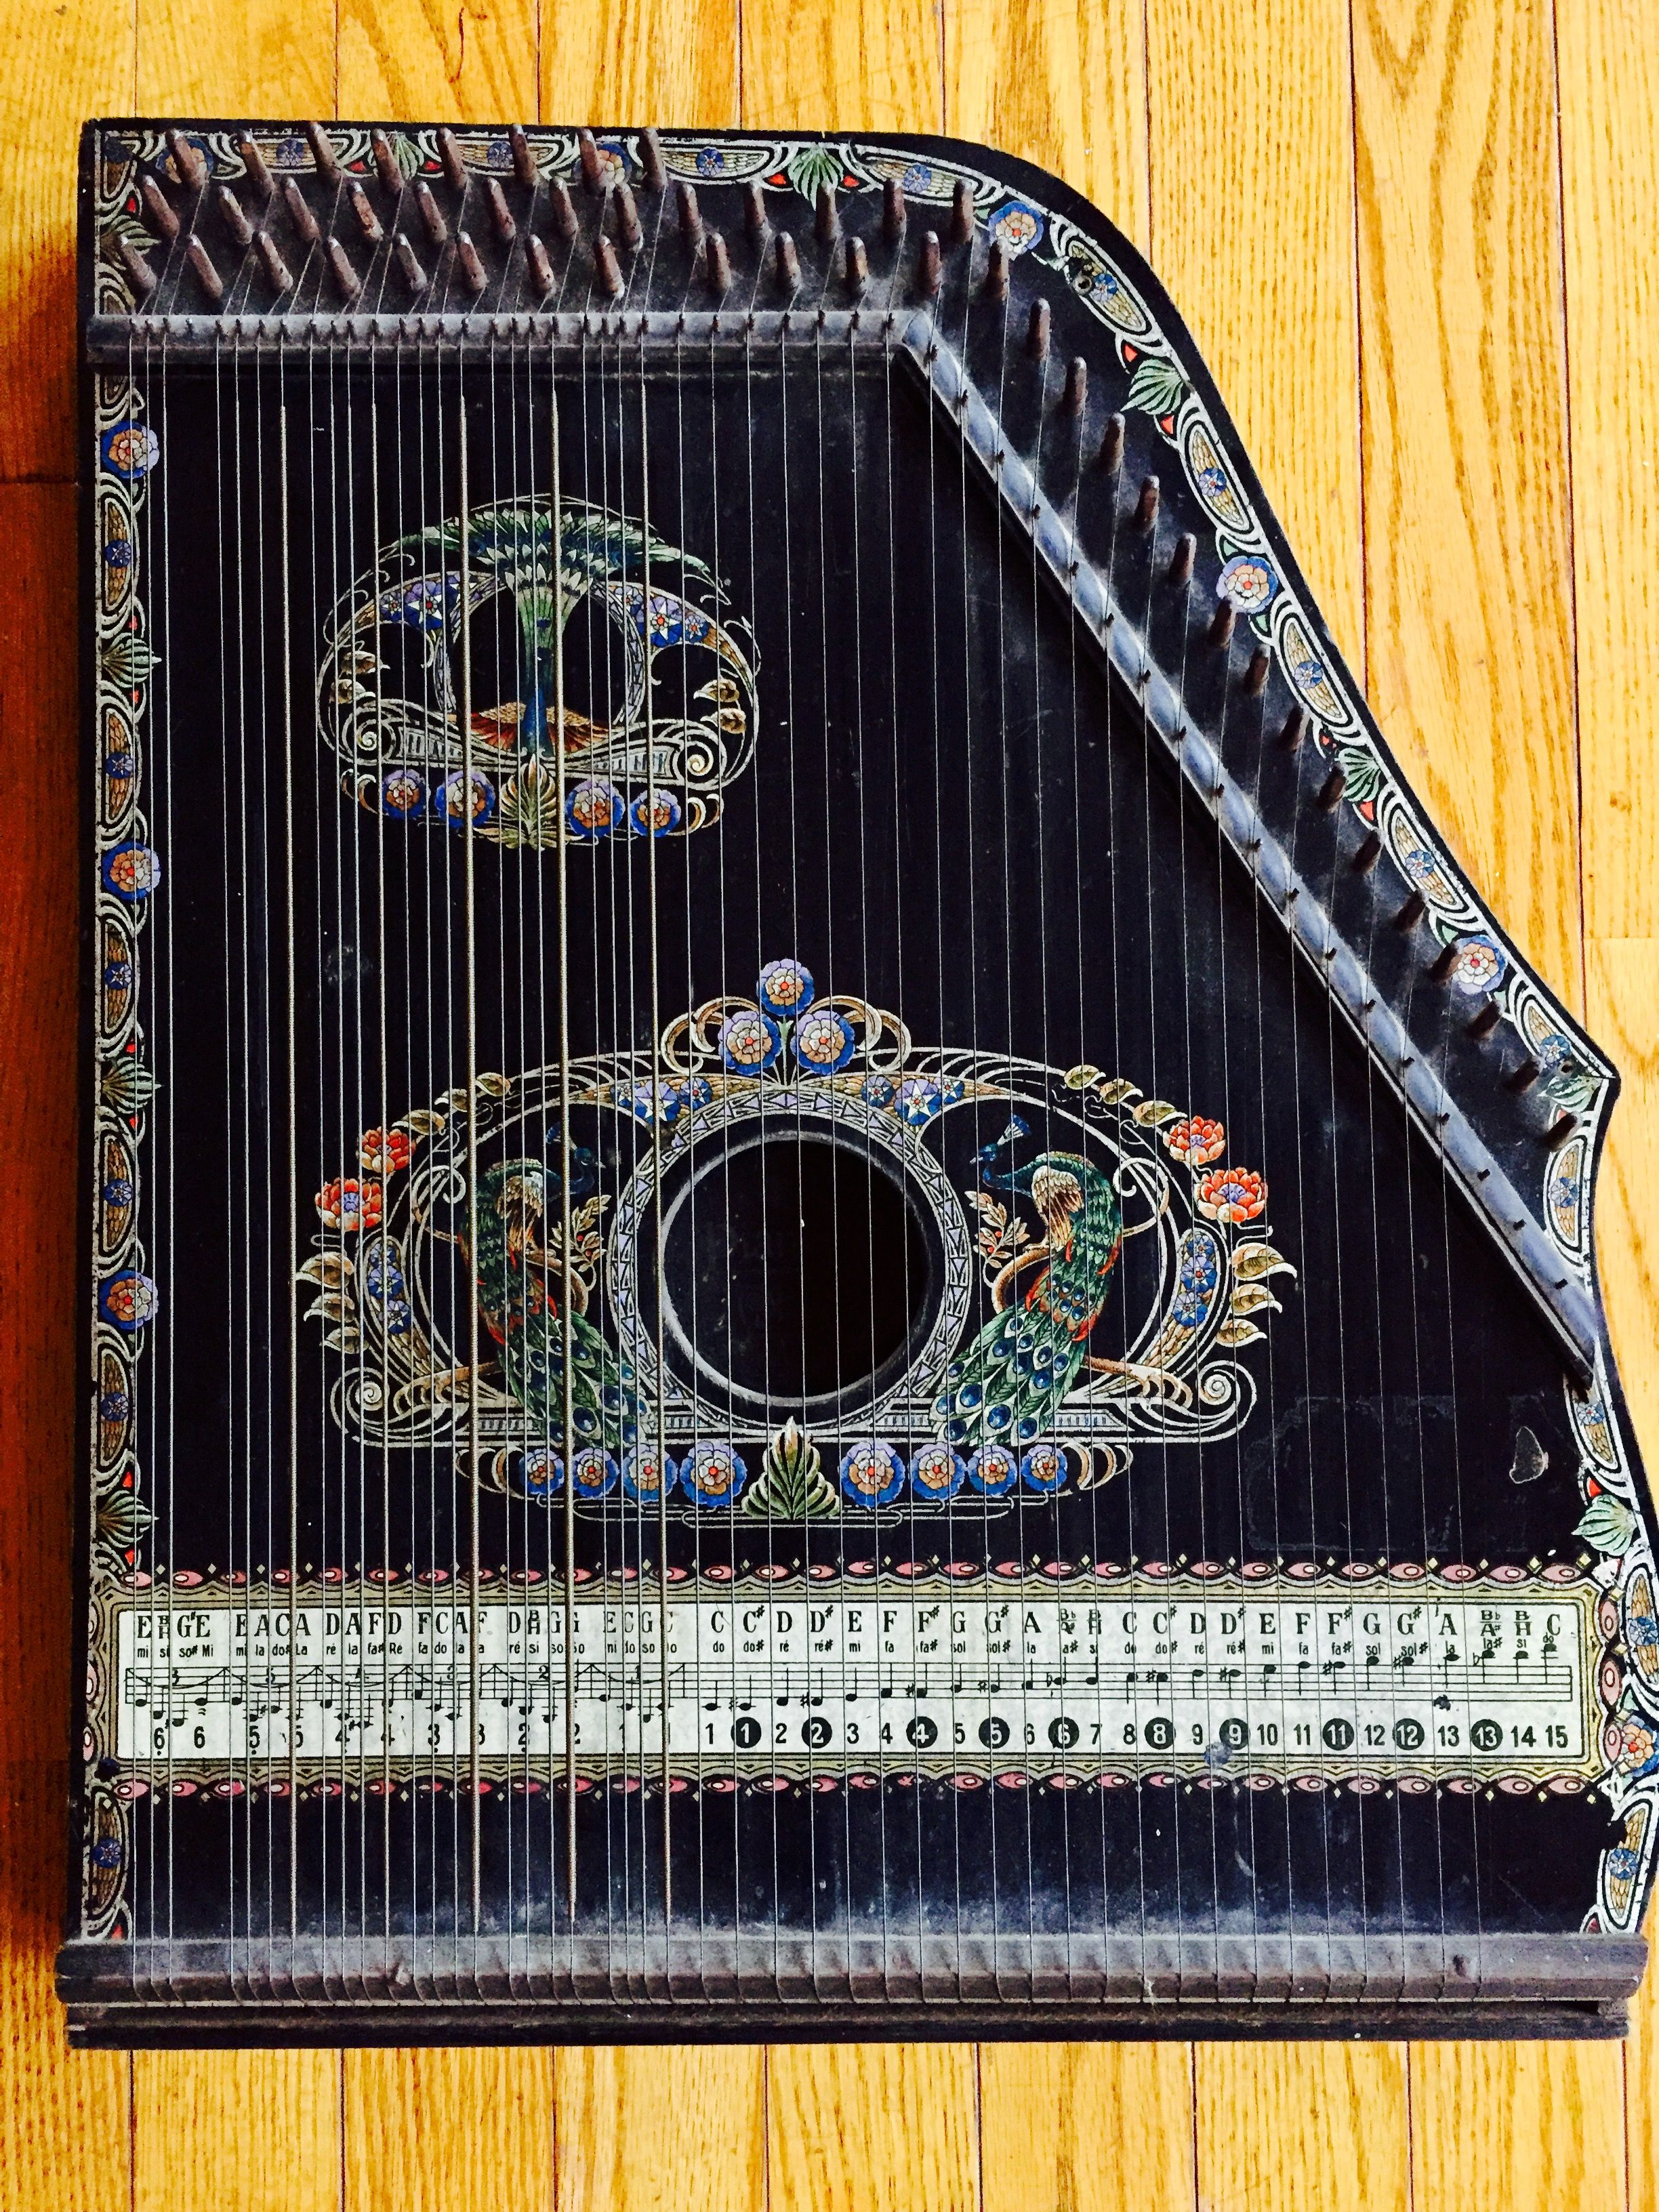 The piano chord guitar zither menzenhauer no 3 12 c1910 the piano chord guitar zither menzenhauer no 3 12 hexwebz Image collections